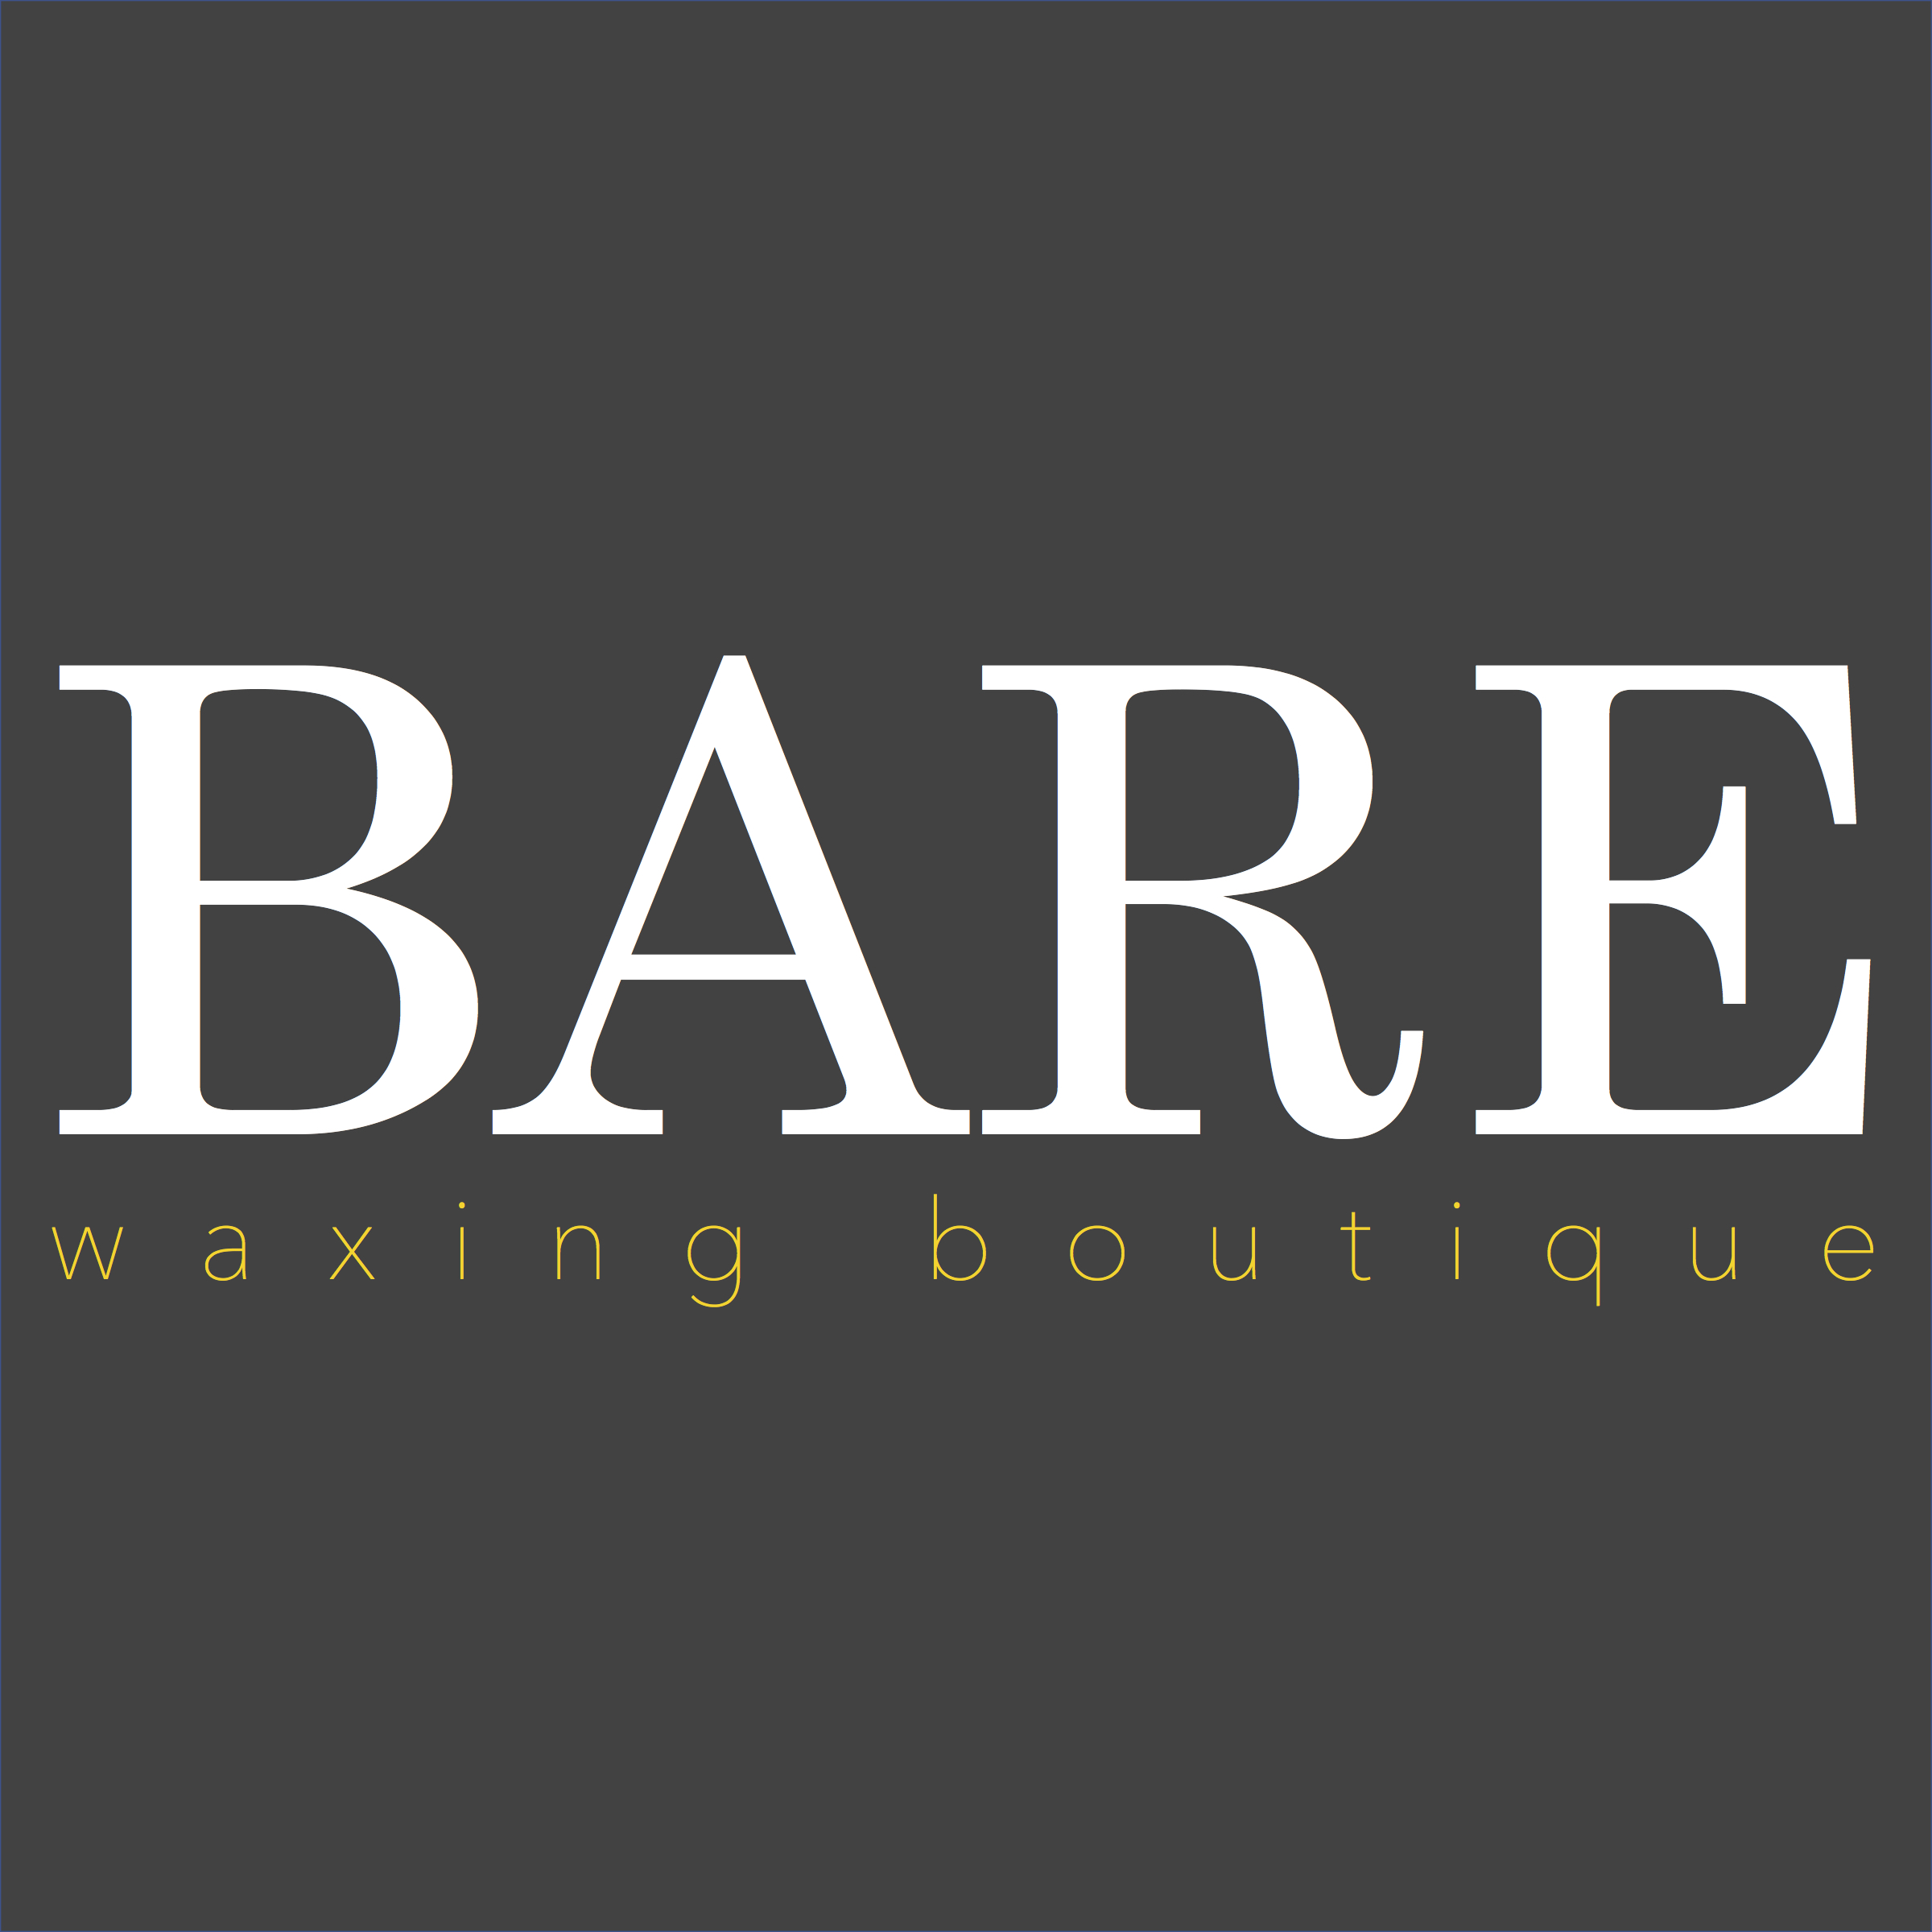 Bare Waxing Boutique image